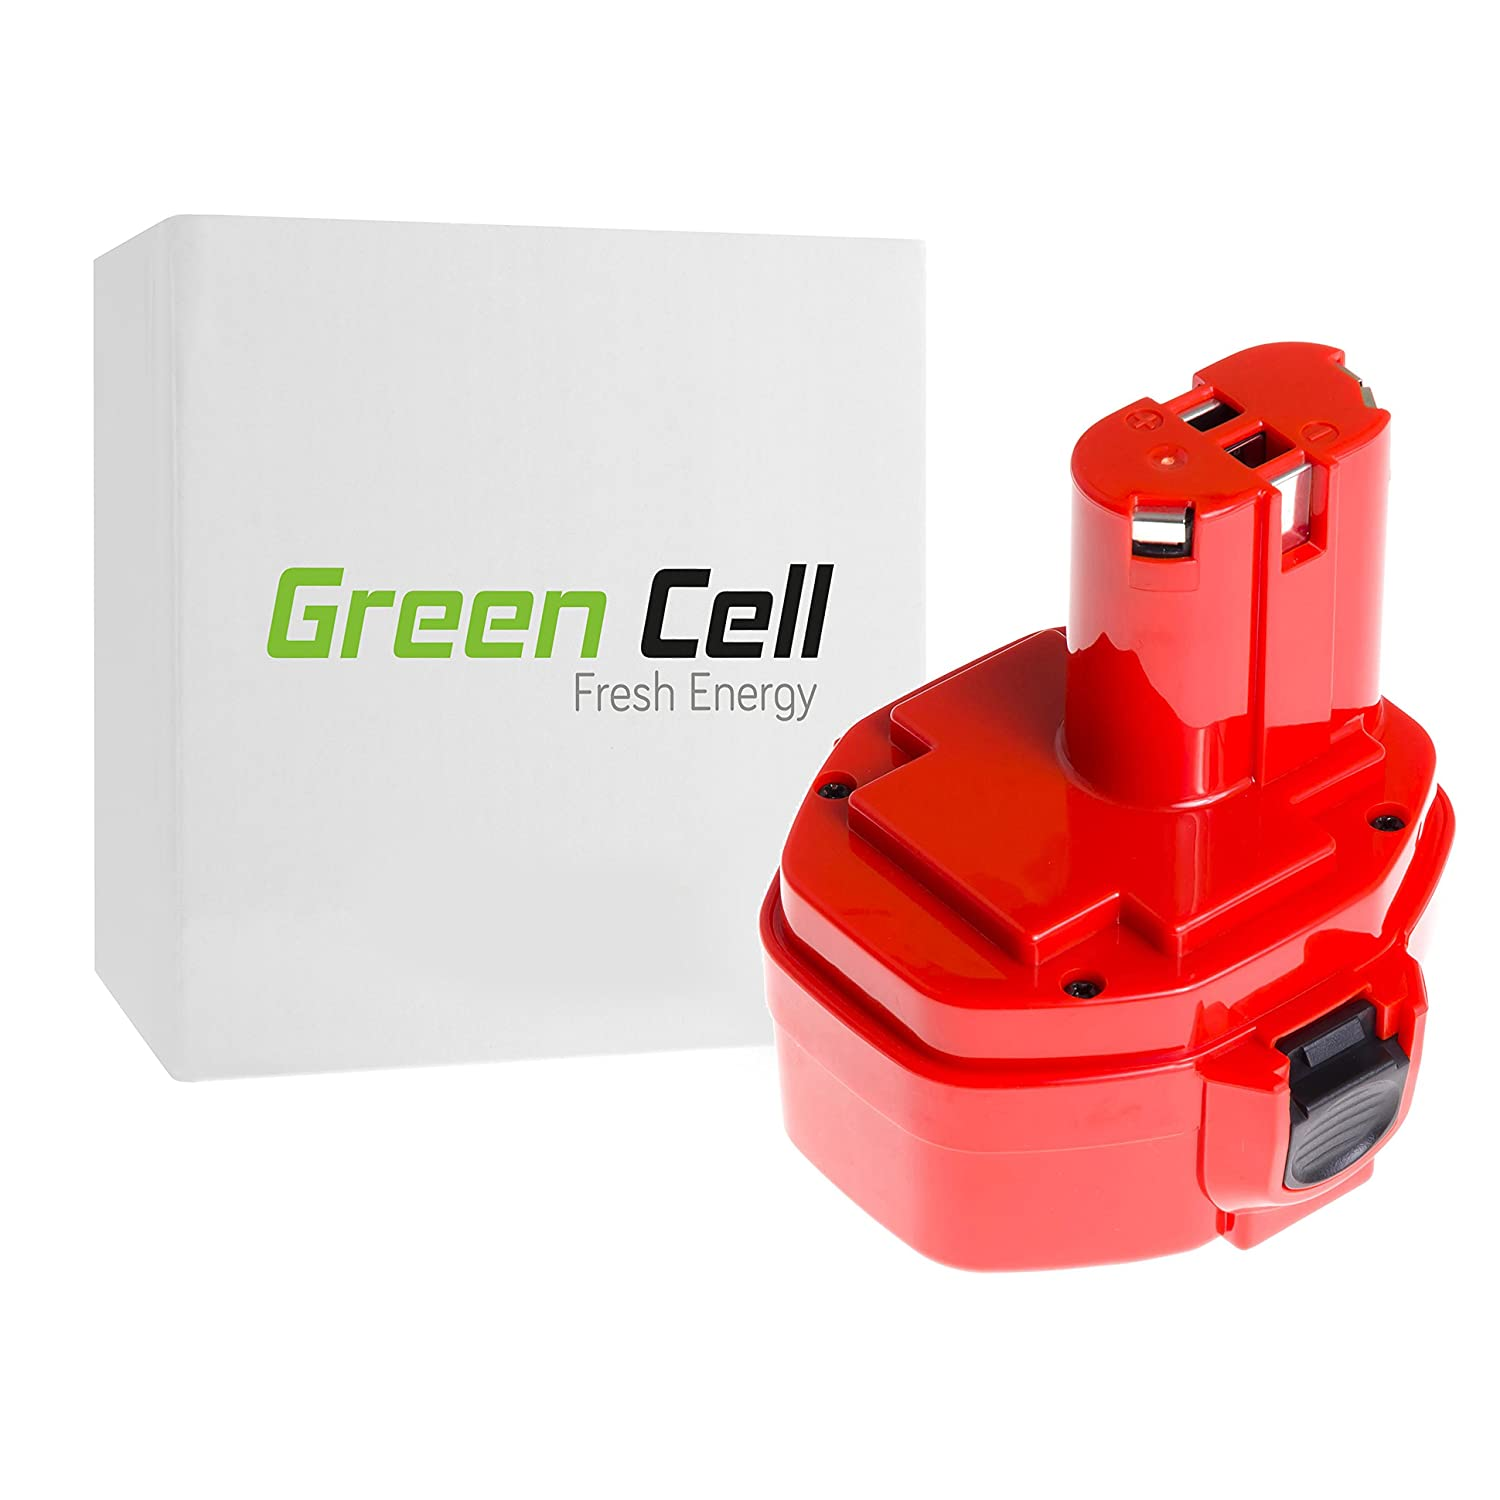 Green Cell® 1420 1422 1433 1434 1435 PA14 1.5Ah 14.4V Ni-MH cellules Batterie pour Makita 1051D 4033D 4332D 4333D 5094D 5630D 6228D 6223D 6236D 6237D 6281D 6333D 6336D 6337D 6339D 8280D 8281D 8433D BMR100 ML140 193060-0 192600-1 193062-6 193101-2 Outil